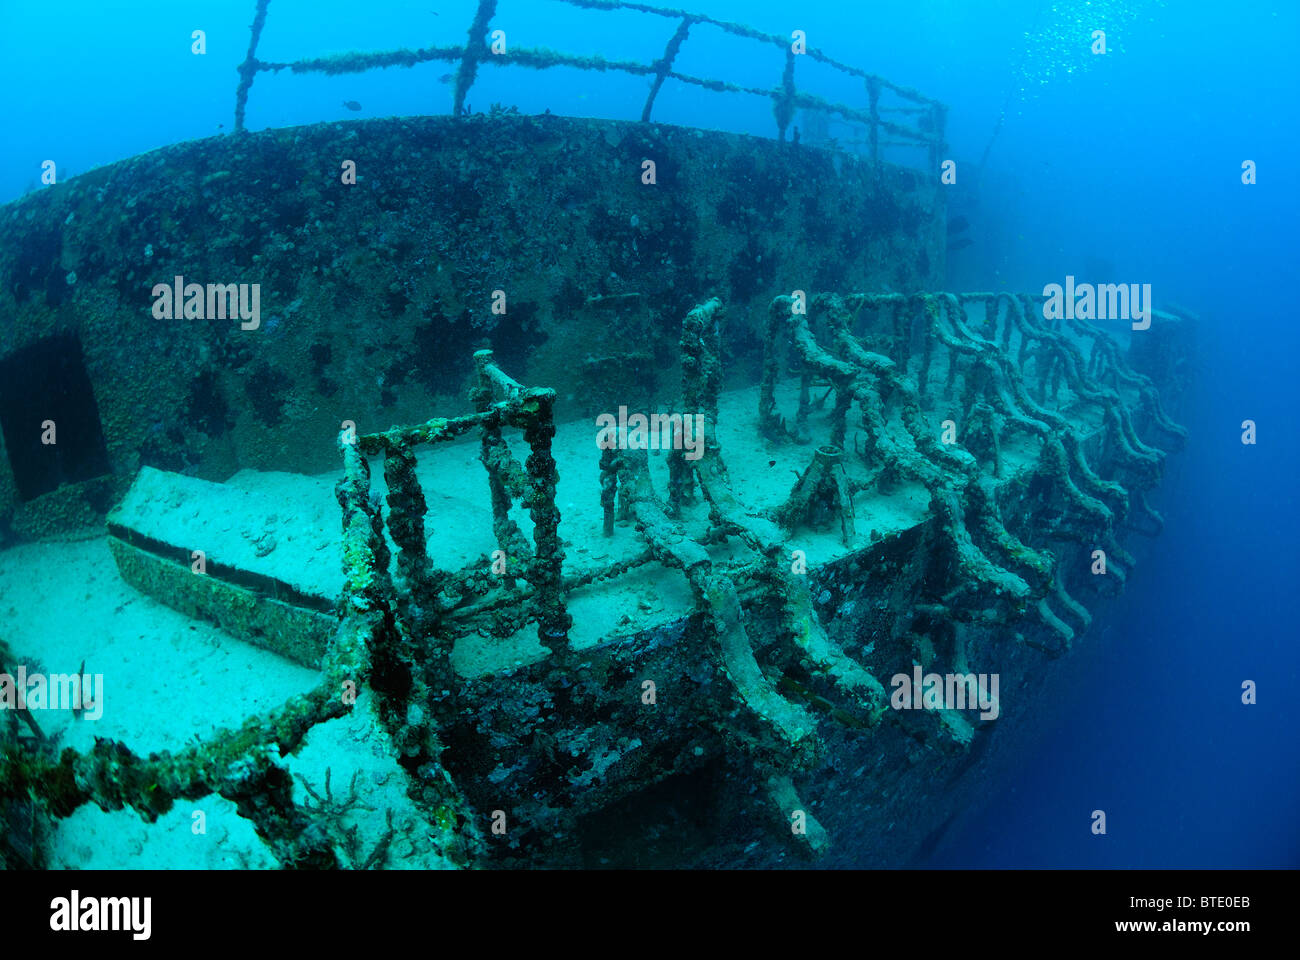 wreck of uss spiegel grove off key largo coast florida usa stock photo royalty free image. Black Bedroom Furniture Sets. Home Design Ideas